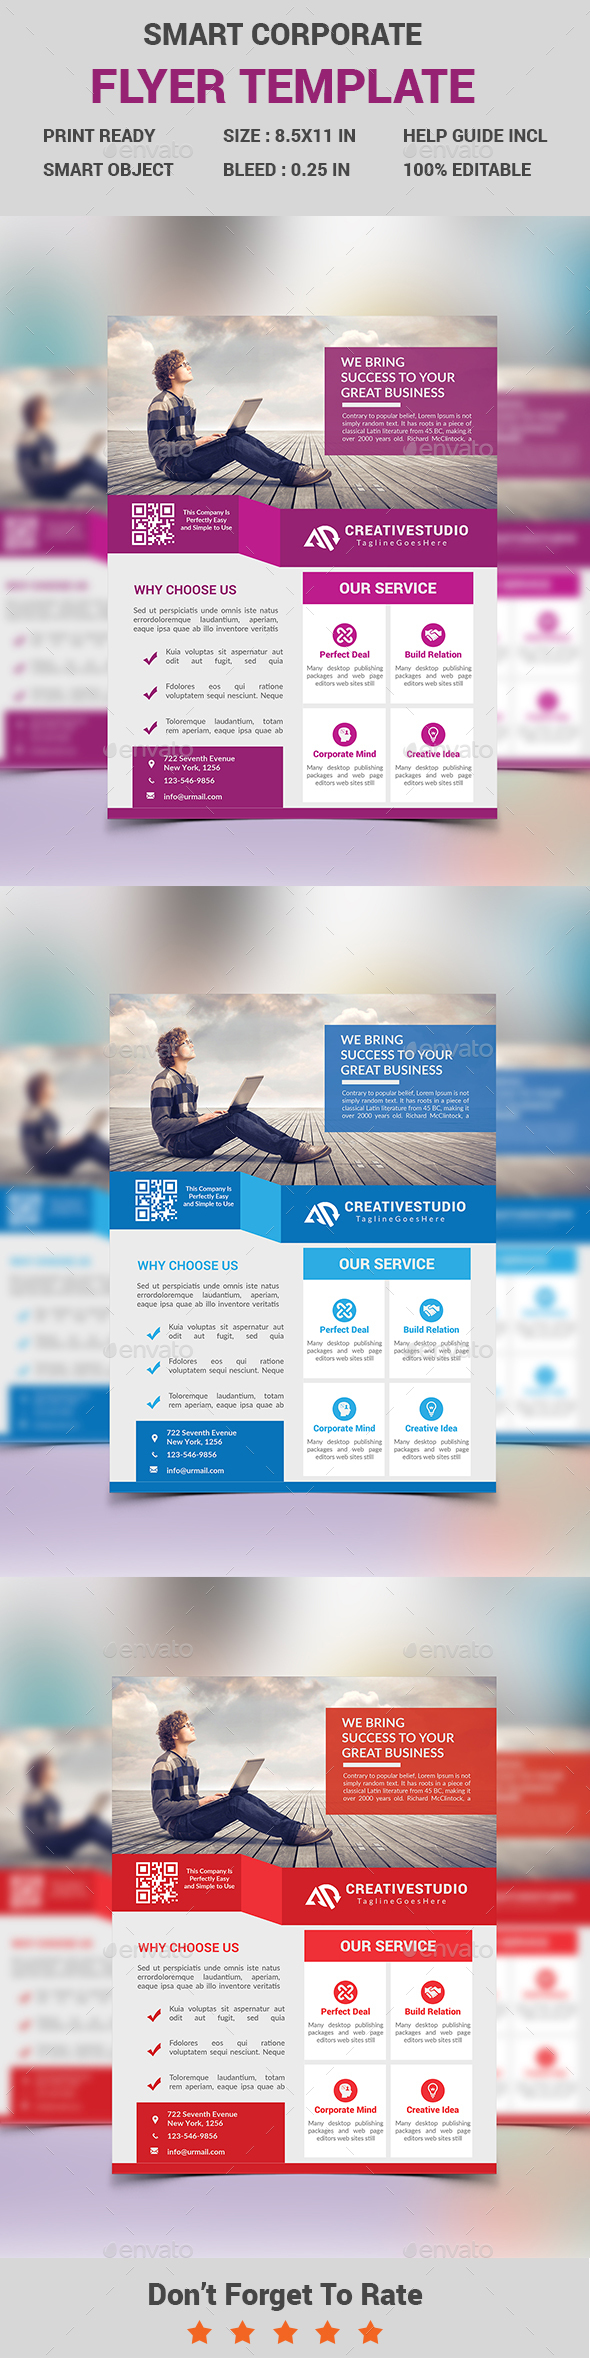 Smart Corporate Business Flyer - Corporate Flyers